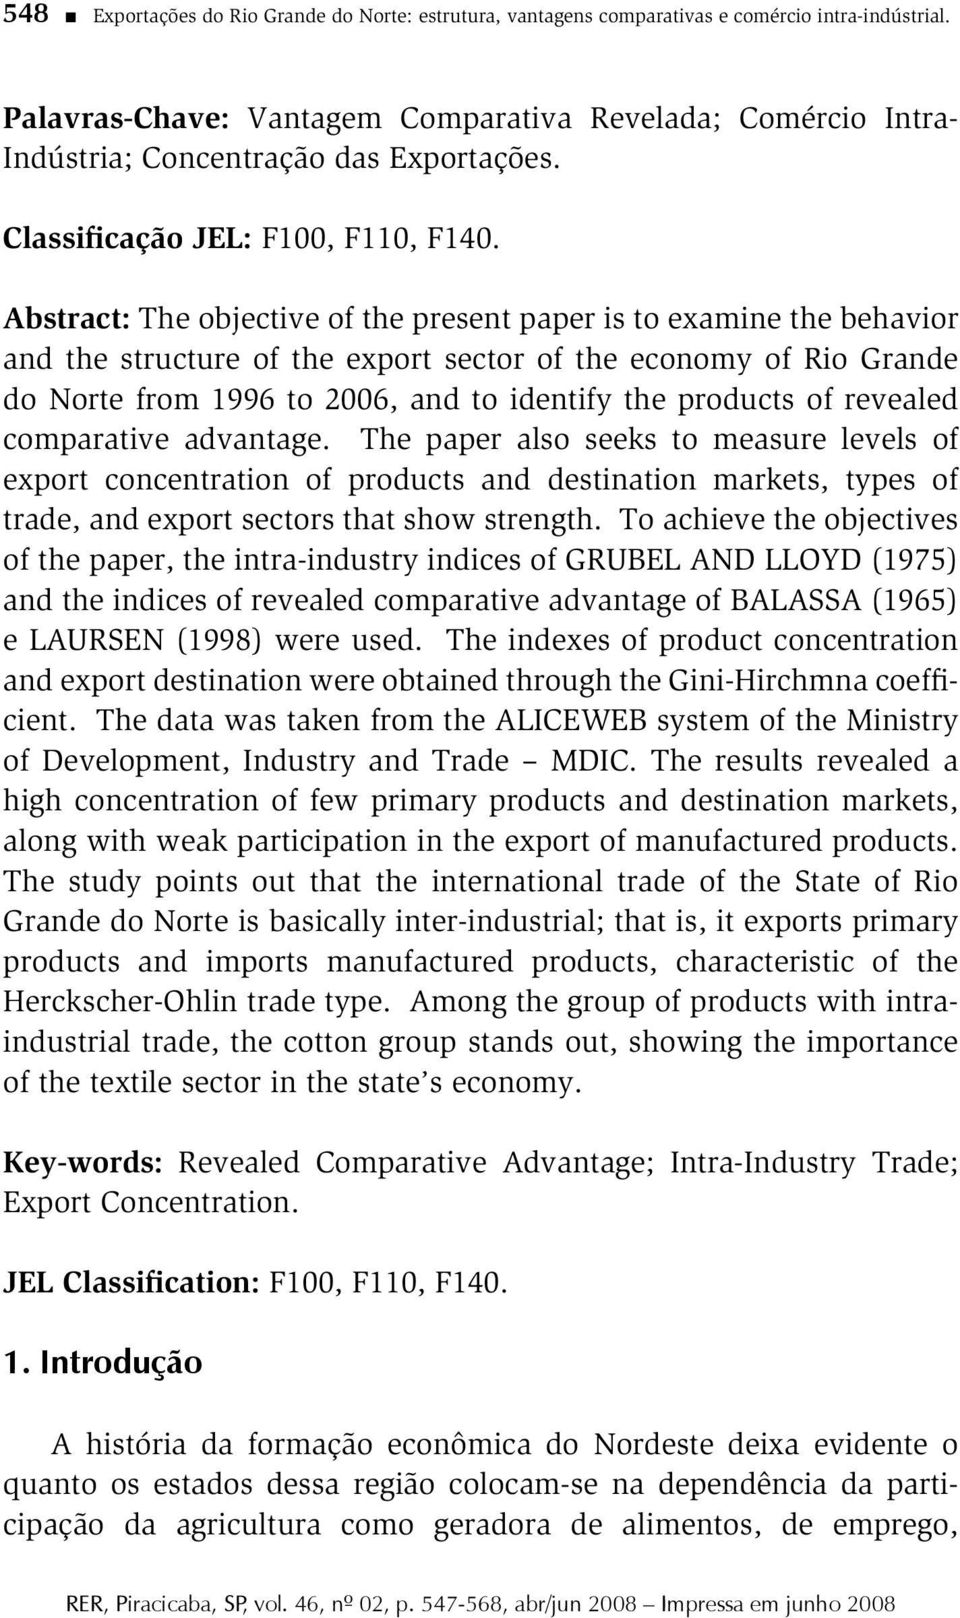 Abstract: The objective of the present paper is to examine the behavior and the structure of the export sector of the economy of Rio Grande do Norte from 1996 to 2006, and to identify the products of